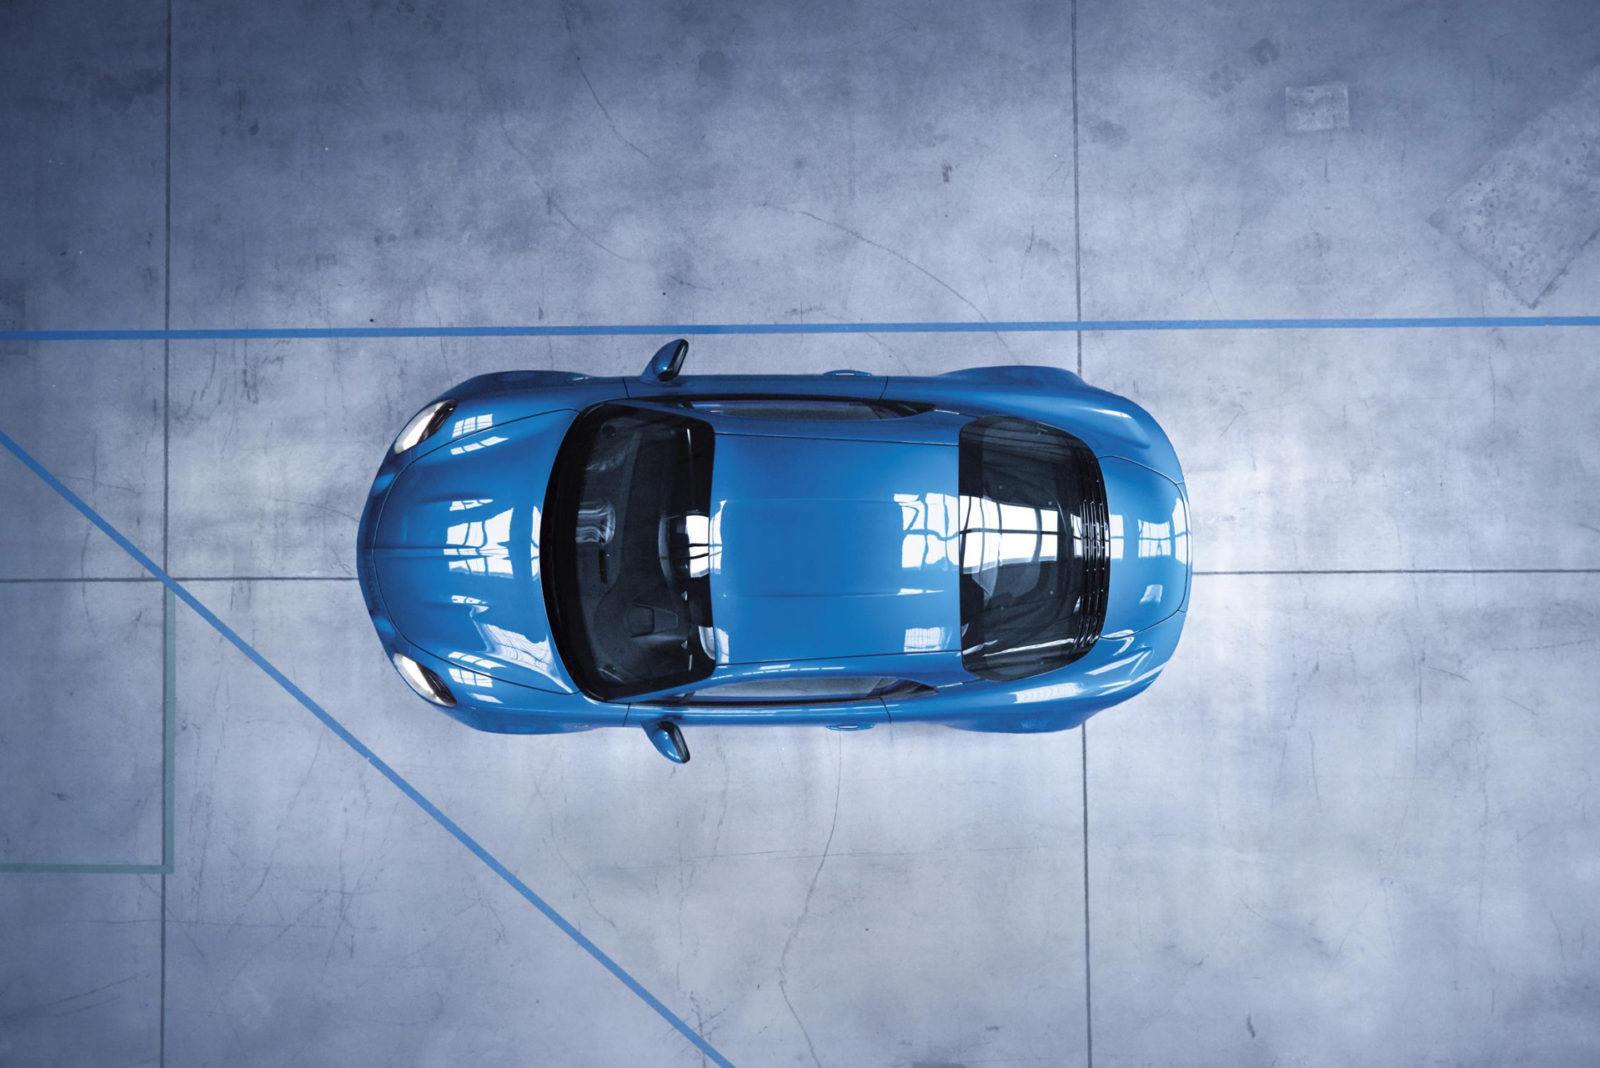 alpine-teases-3-electric-vehicles,-including-sports-car